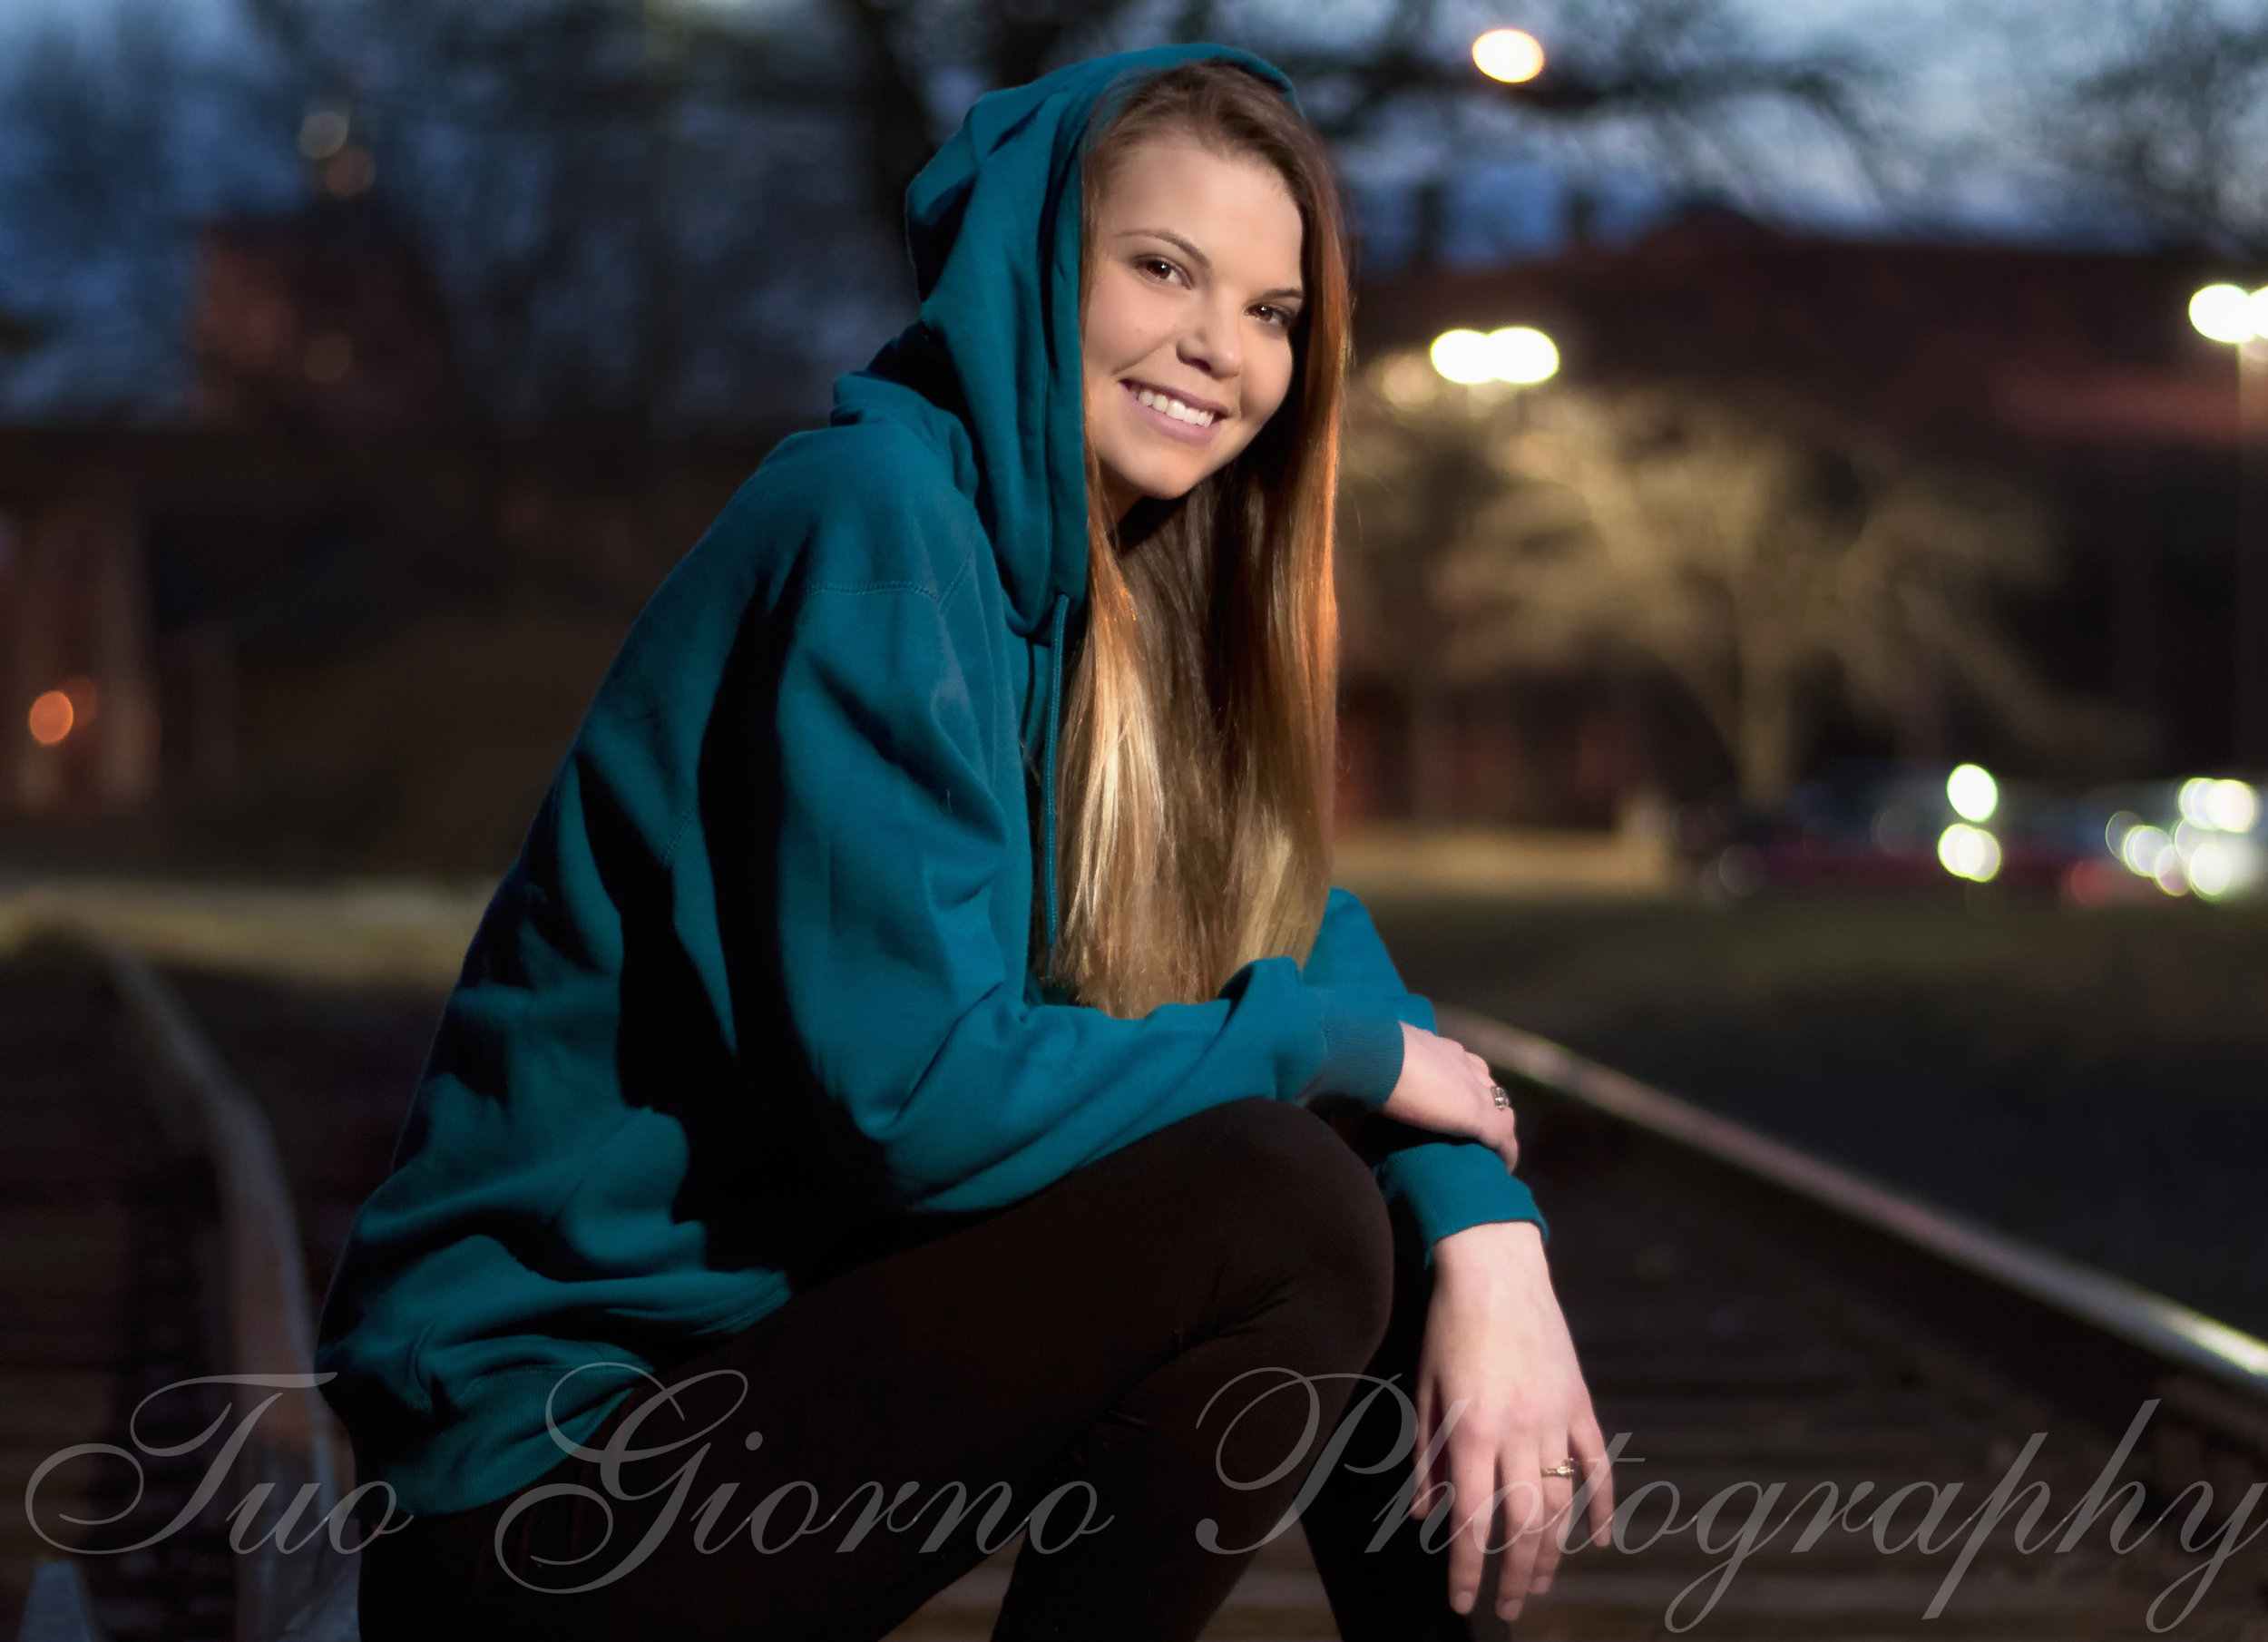 Taken on an inactive railroad track, no worries!